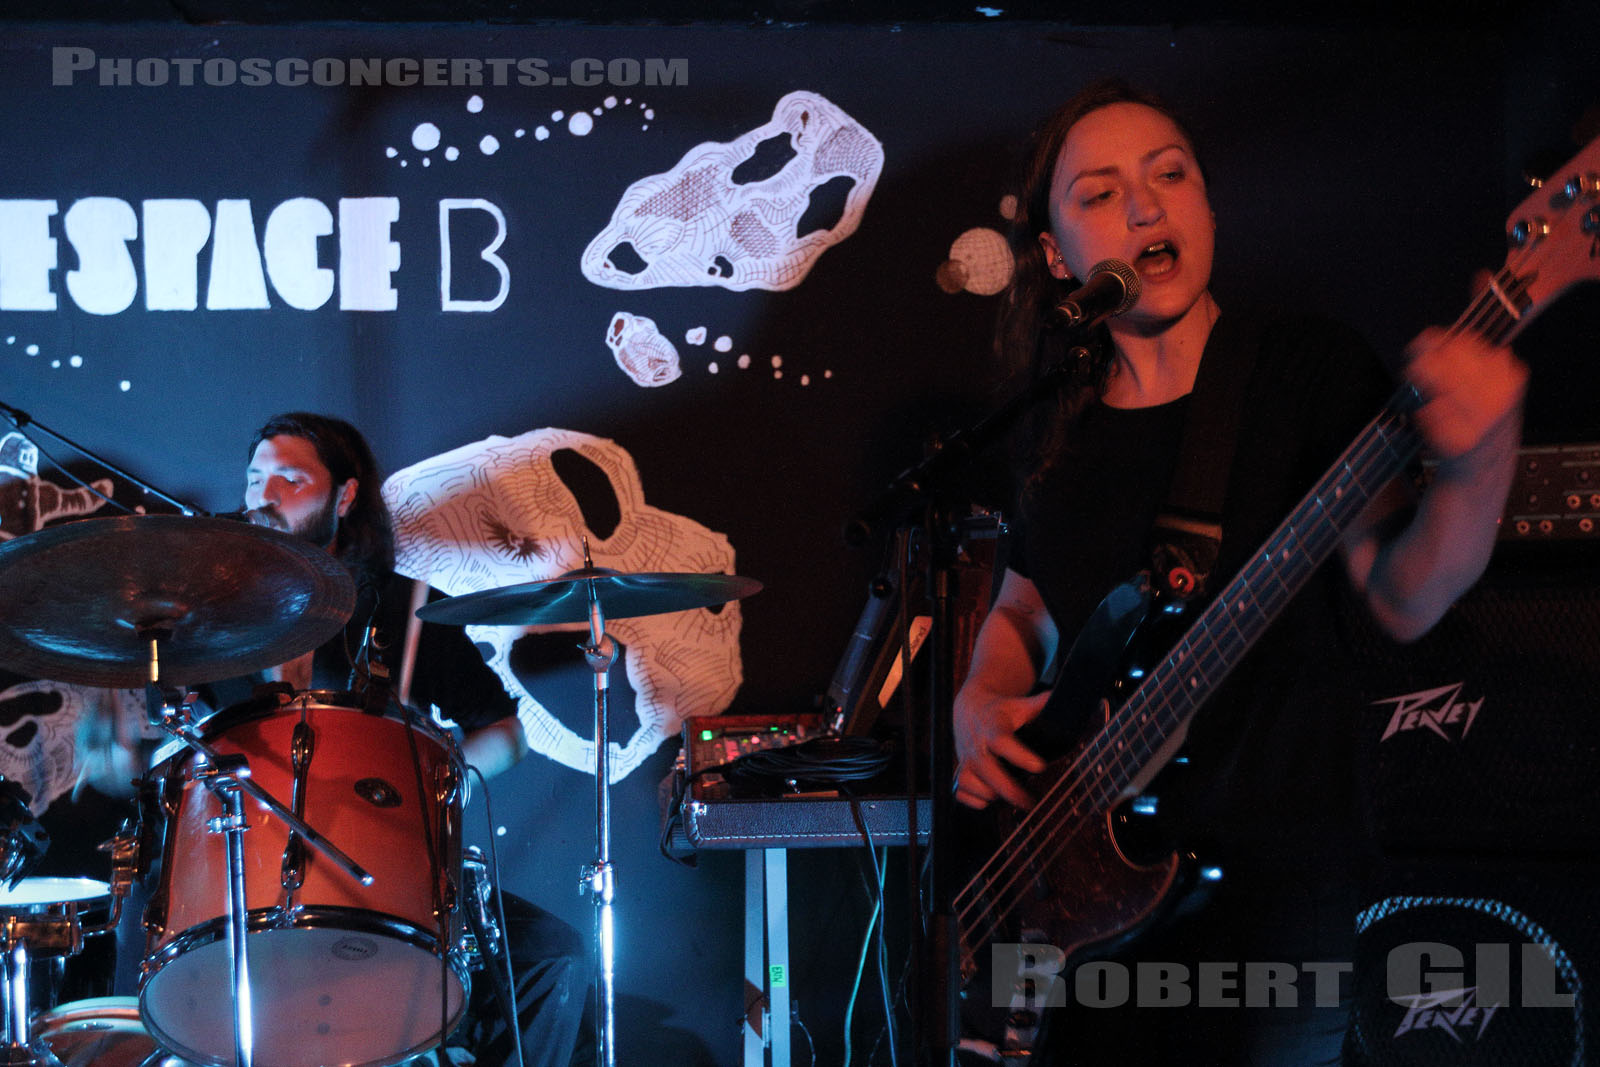 ESBEN AND THE WITCH - 2017-02-17 - PARIS - Espace B